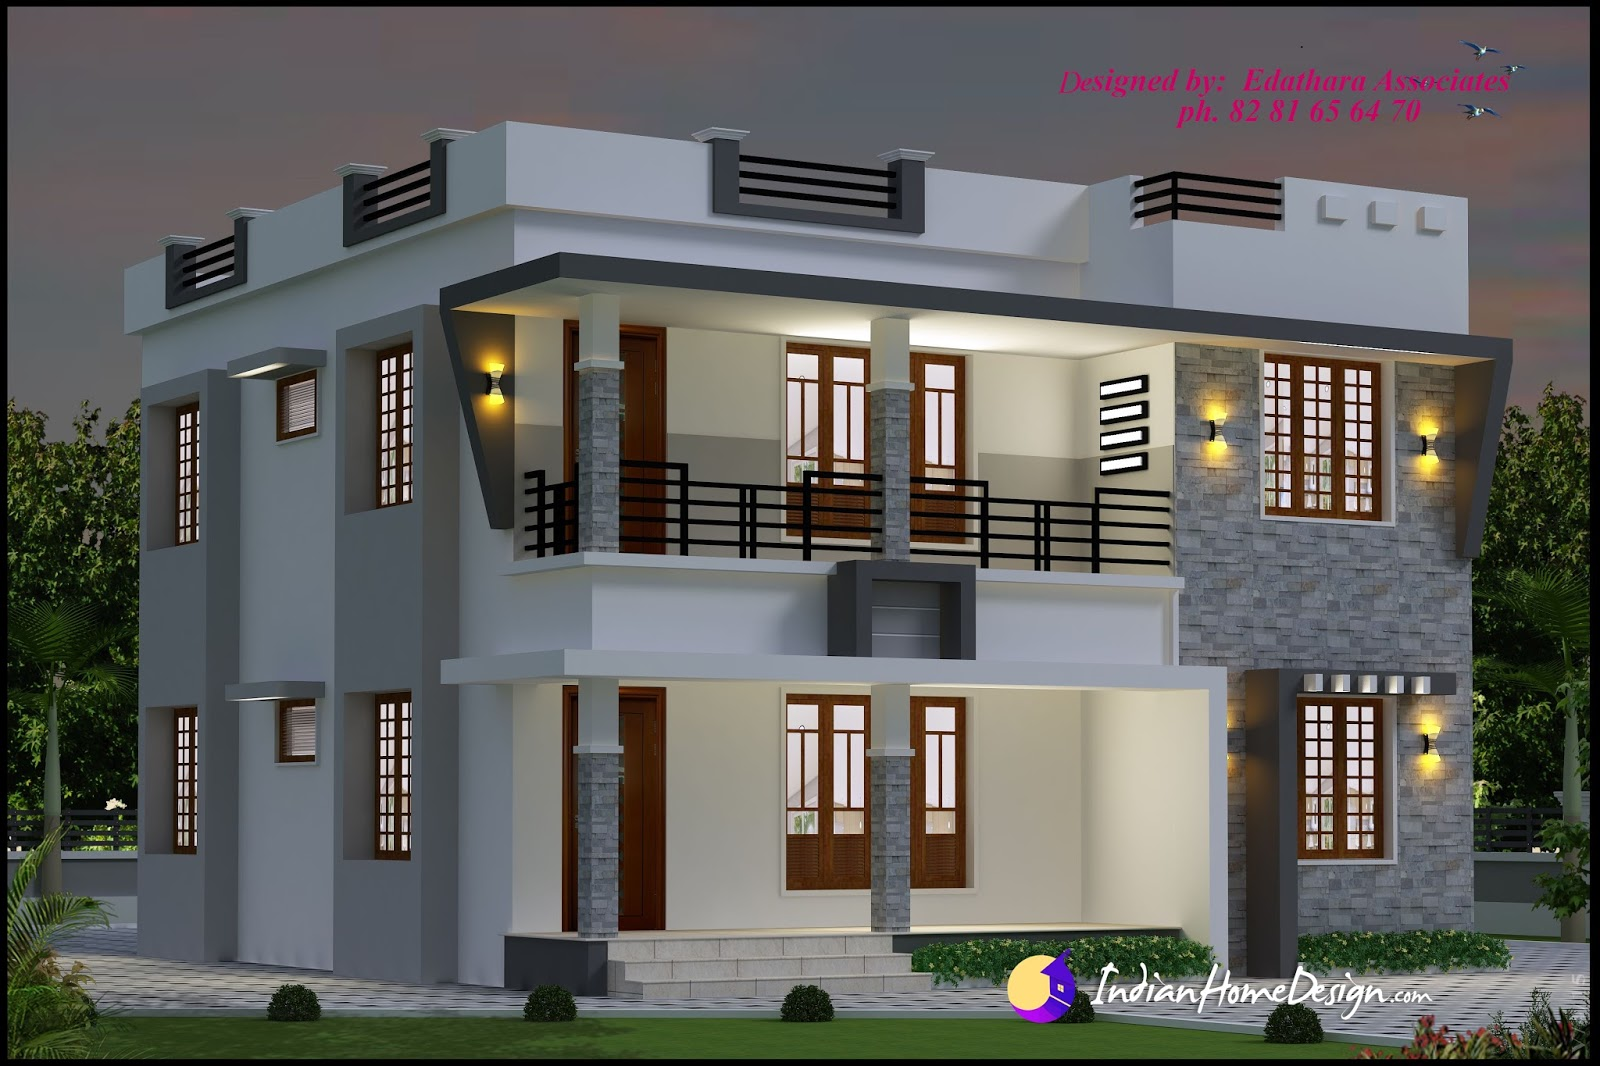 1696 sqft modern double floor kerala home design indian for 2 bhk house designs in india